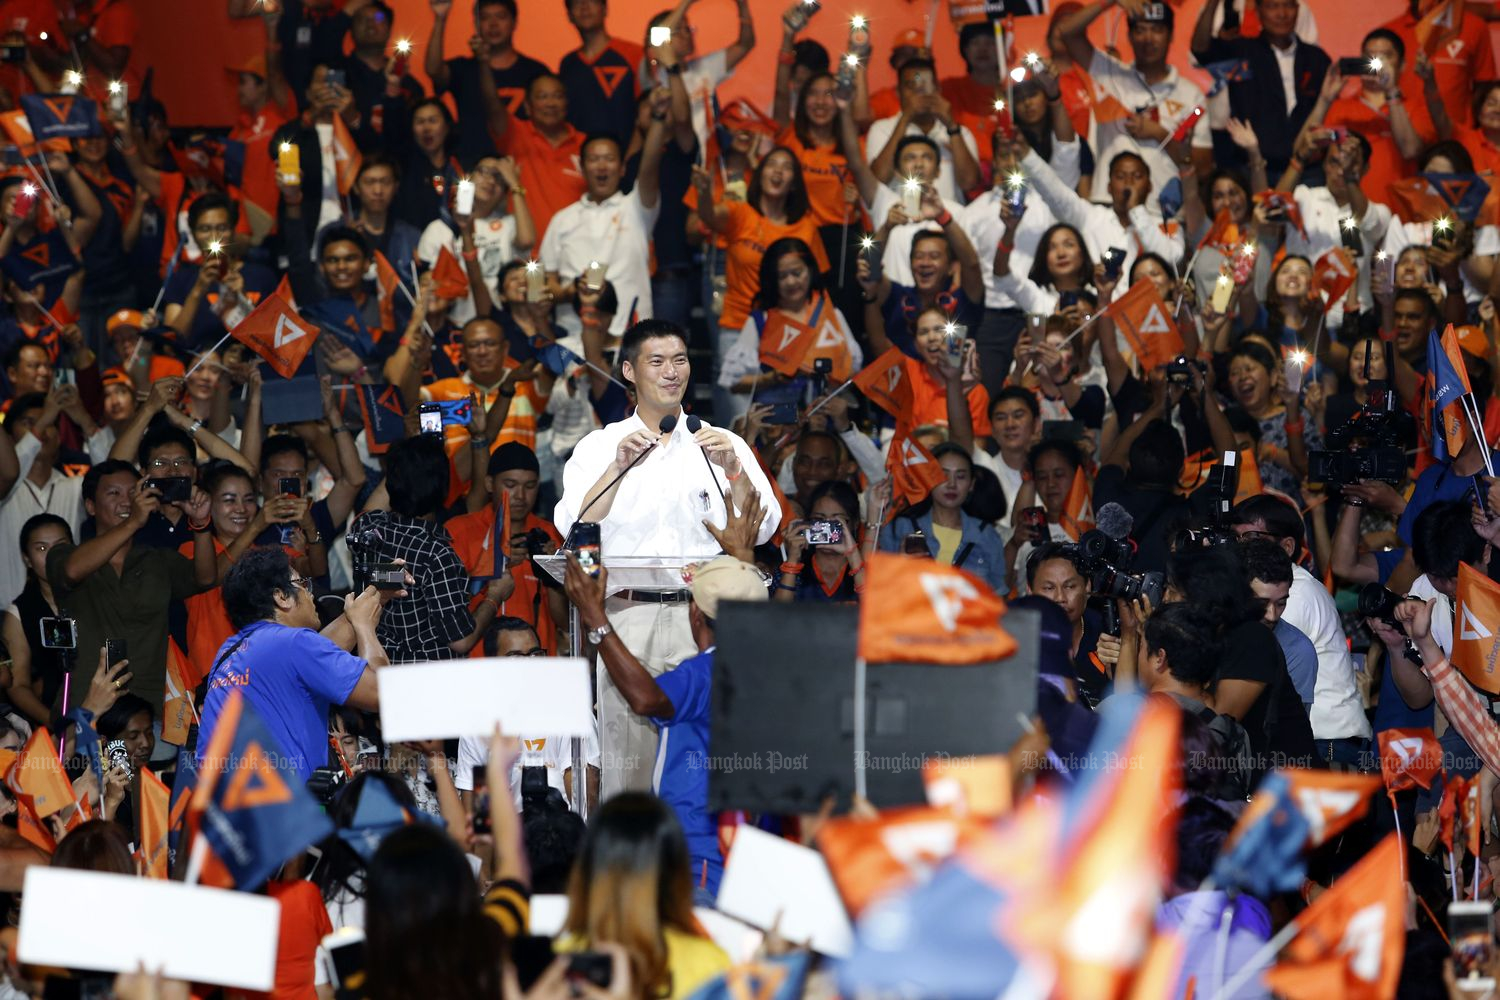 Future Forward Party leader Thanathorn Juangroongruangkit at the last campaign on March 22, two days ahead of the March 24 election. (Photo by Pattarapong Chatpattarasill)